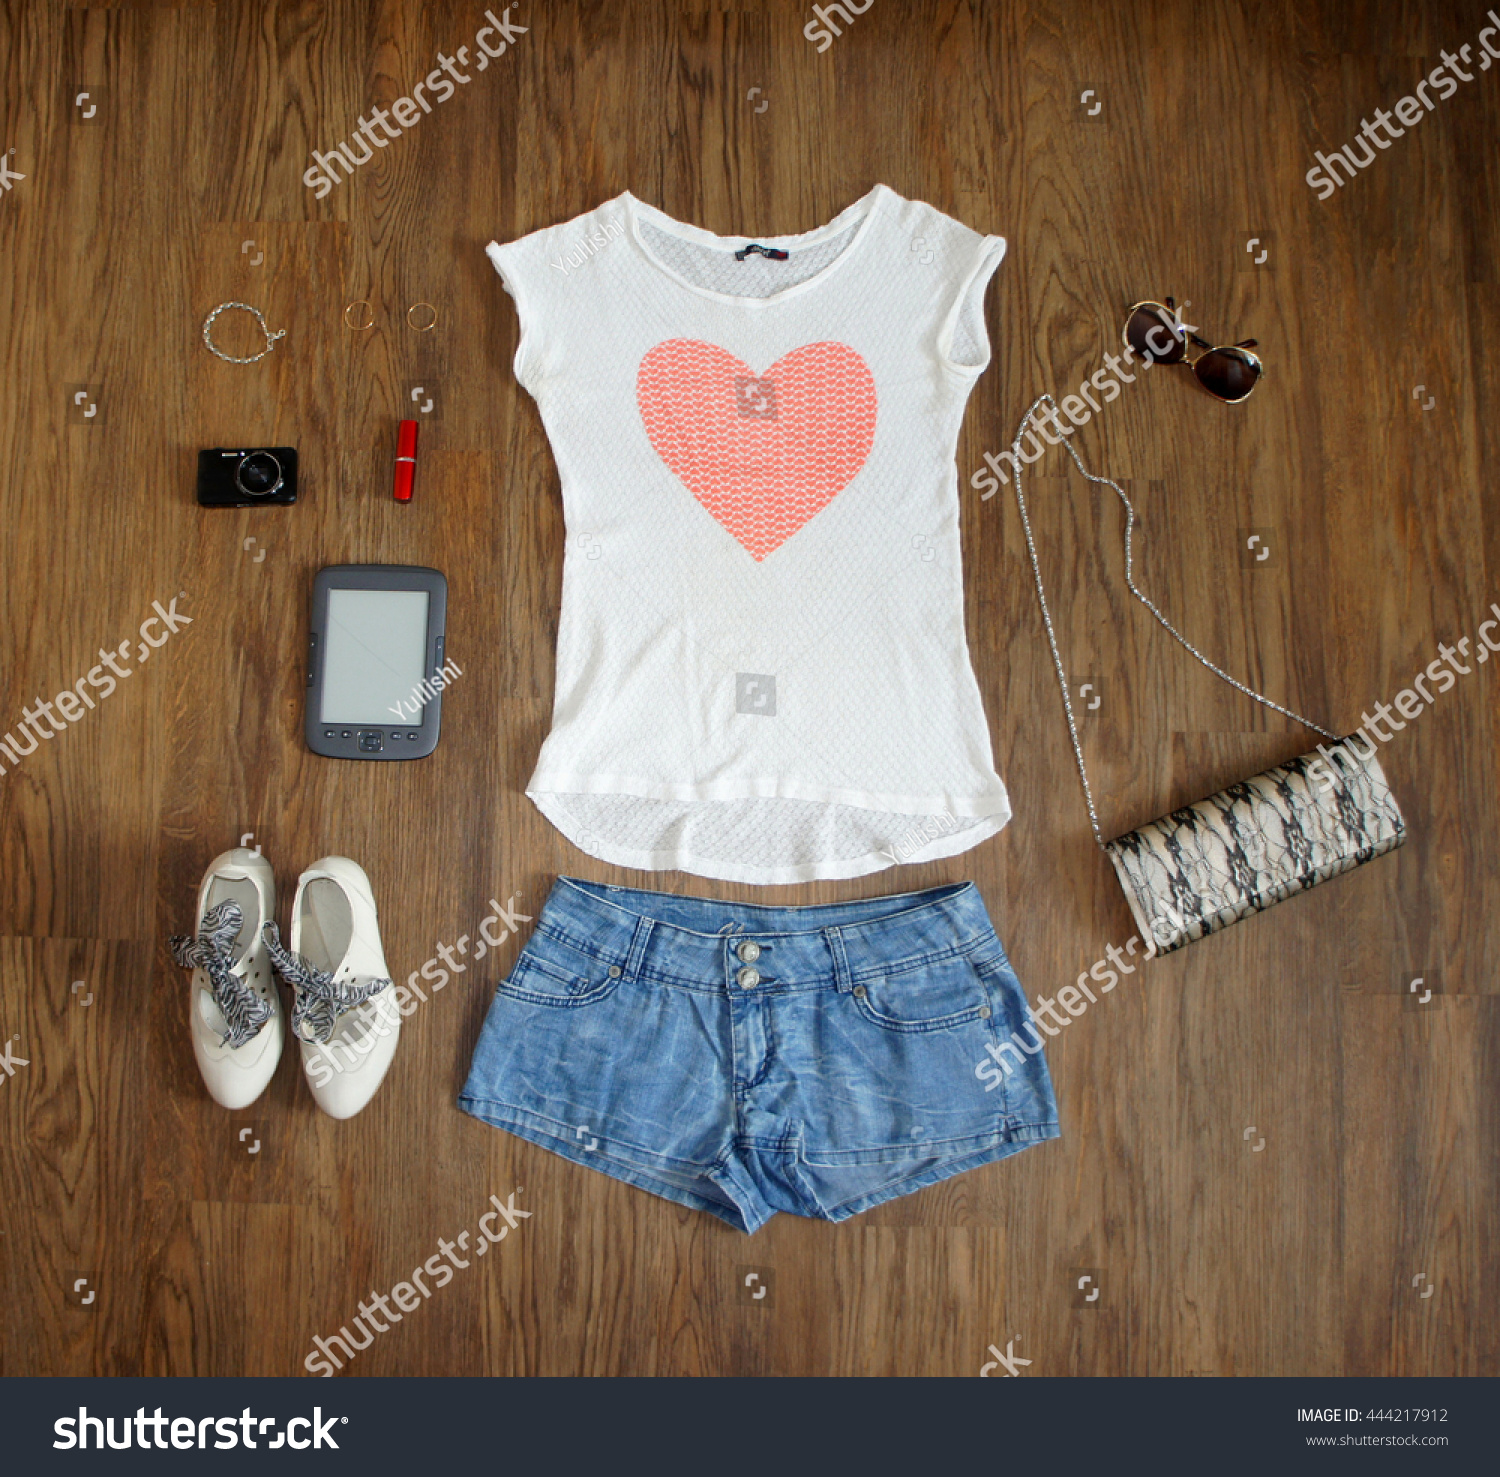 1eab6abffdb6 flat lay feminine clothes and accessories collage: white t-shirt with  hearts, Jean.